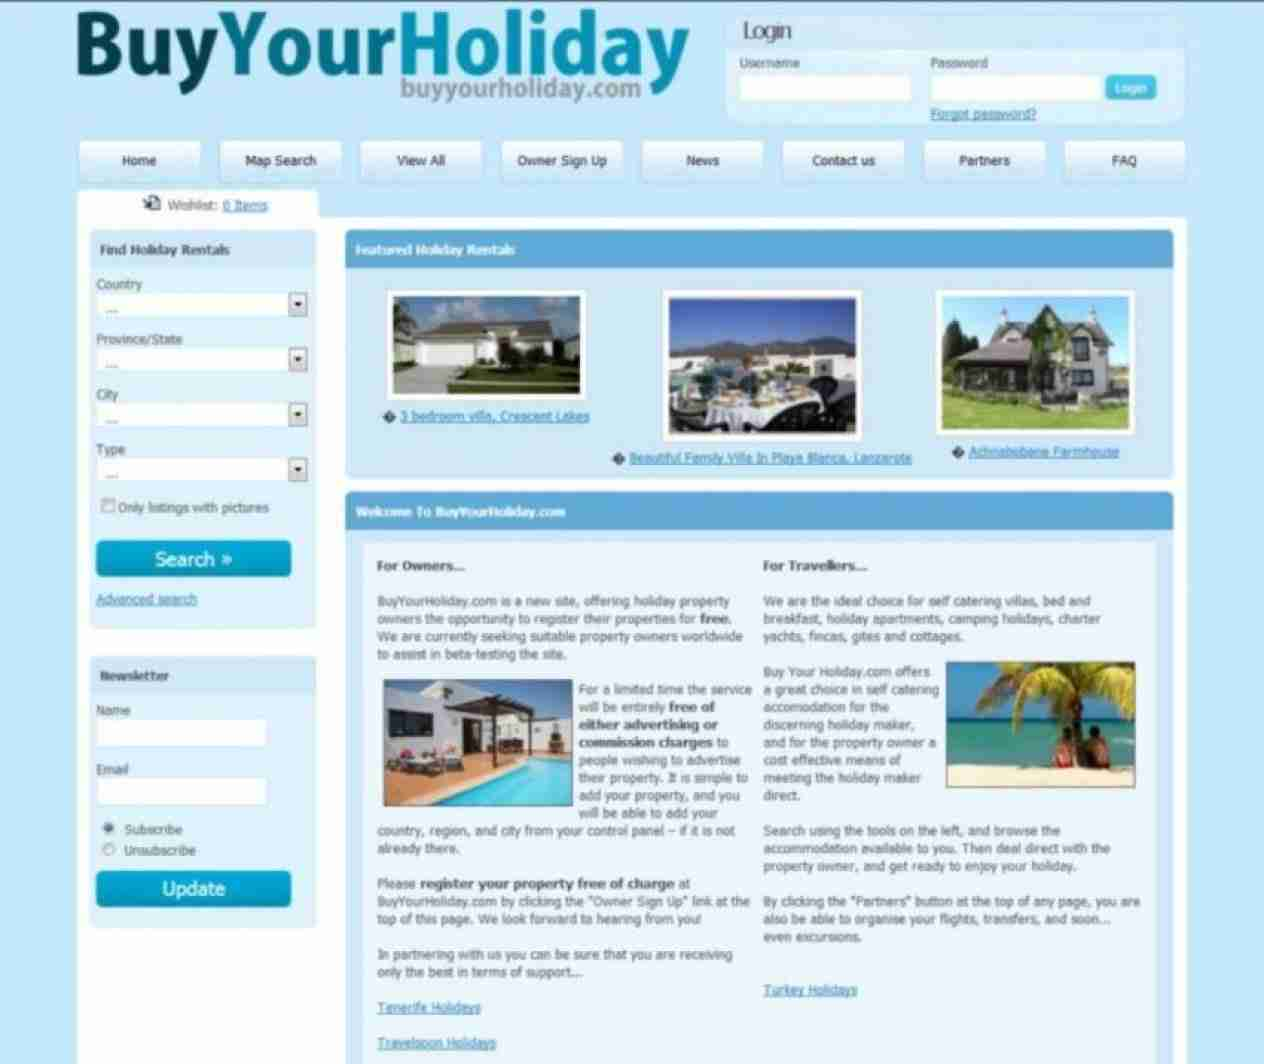 Buy-Your-Holiday-850x689-1264x1064